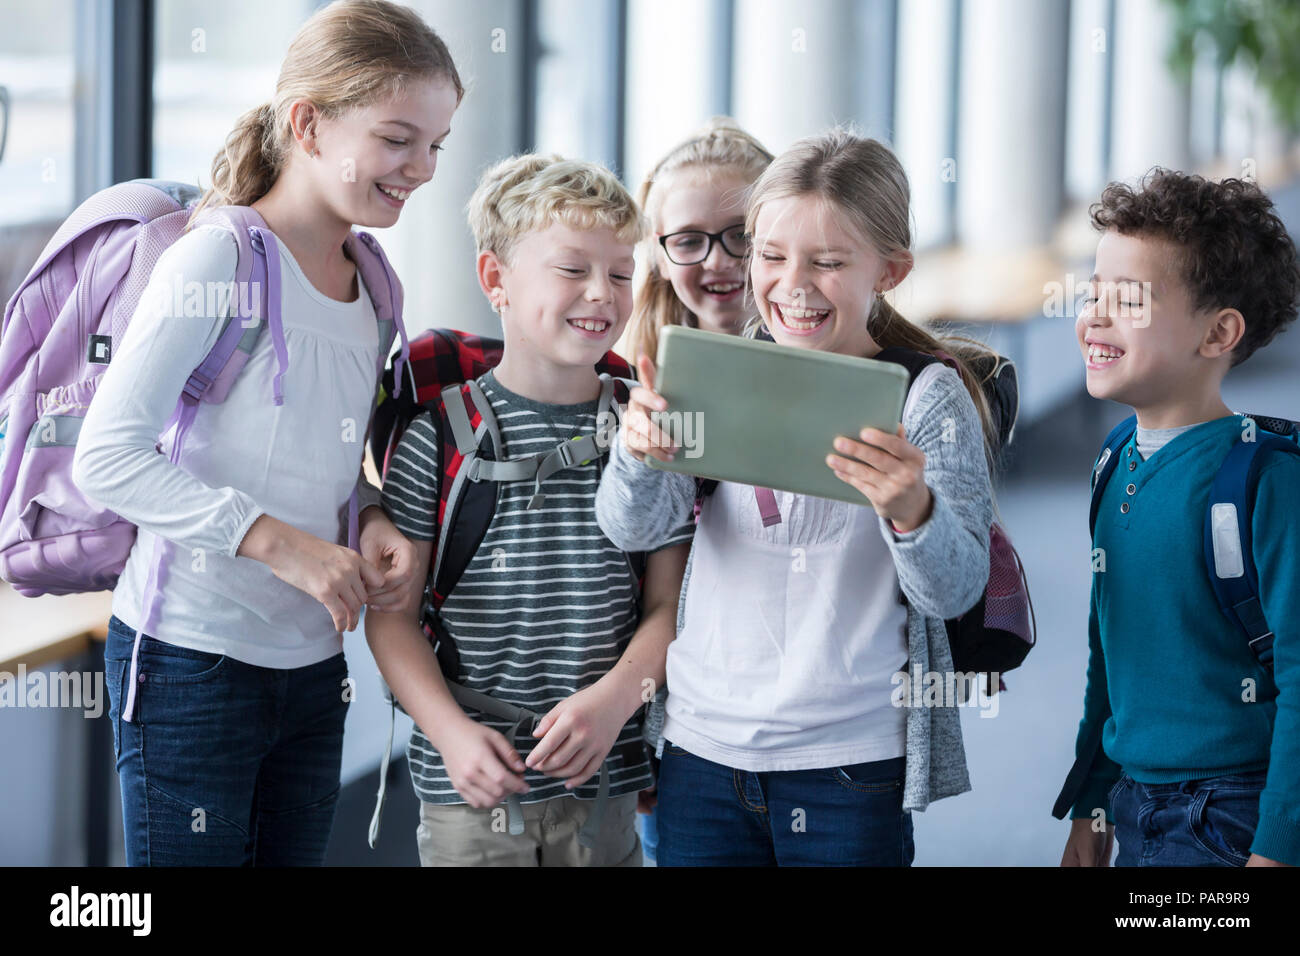 Les élèves à la tablette à rire sur school corridor Photo Stock